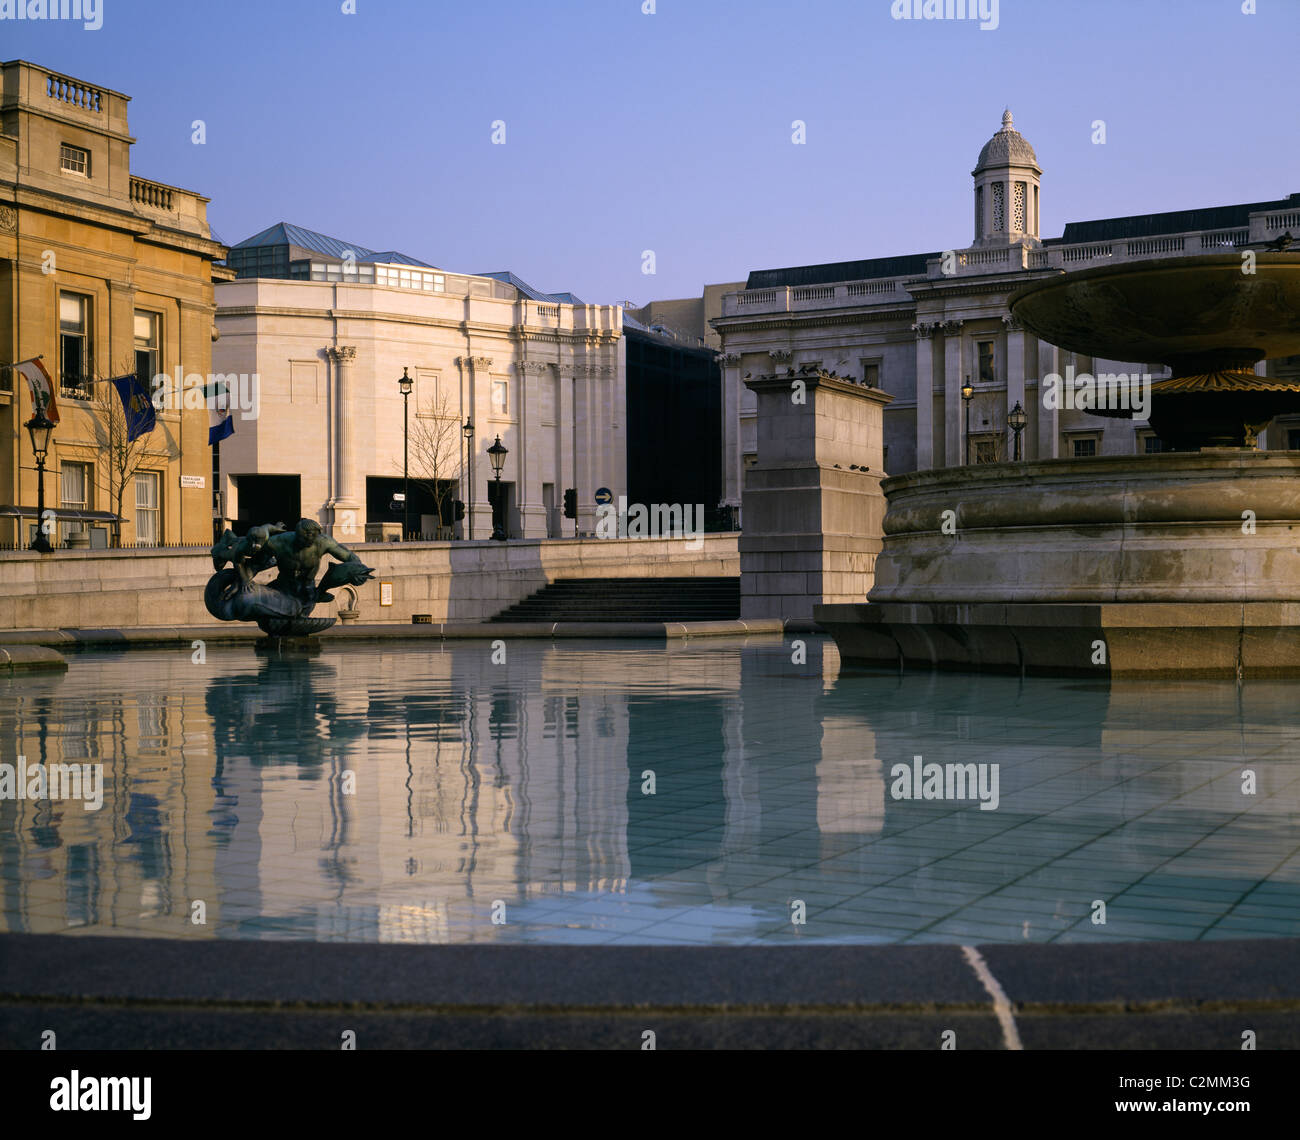 The National Gallery and Sainsbury Wing from Trafalgar Square. Stock Photo